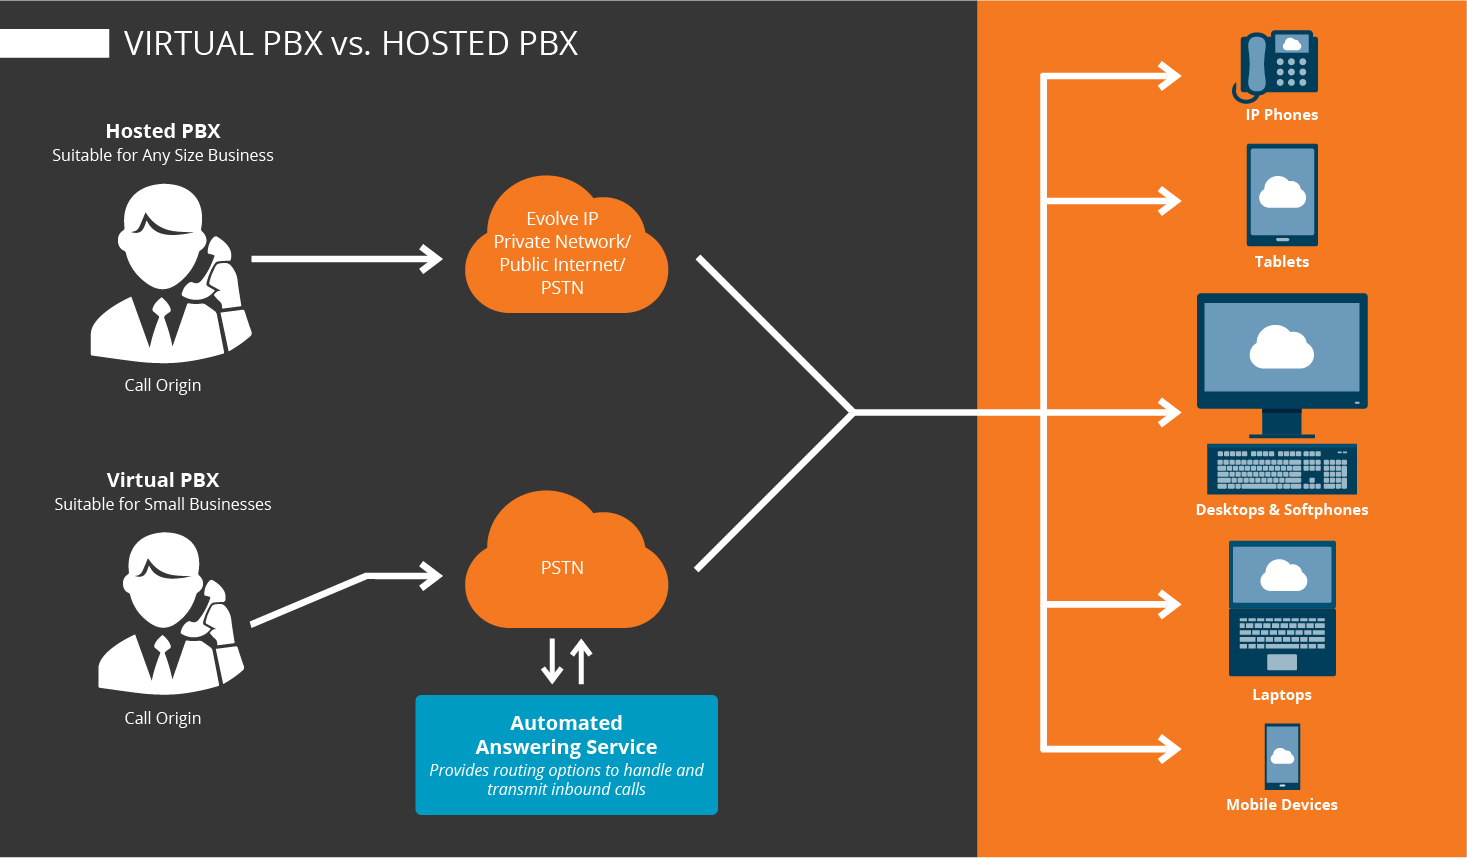 Virtual PBX & Hosted PBX Explained